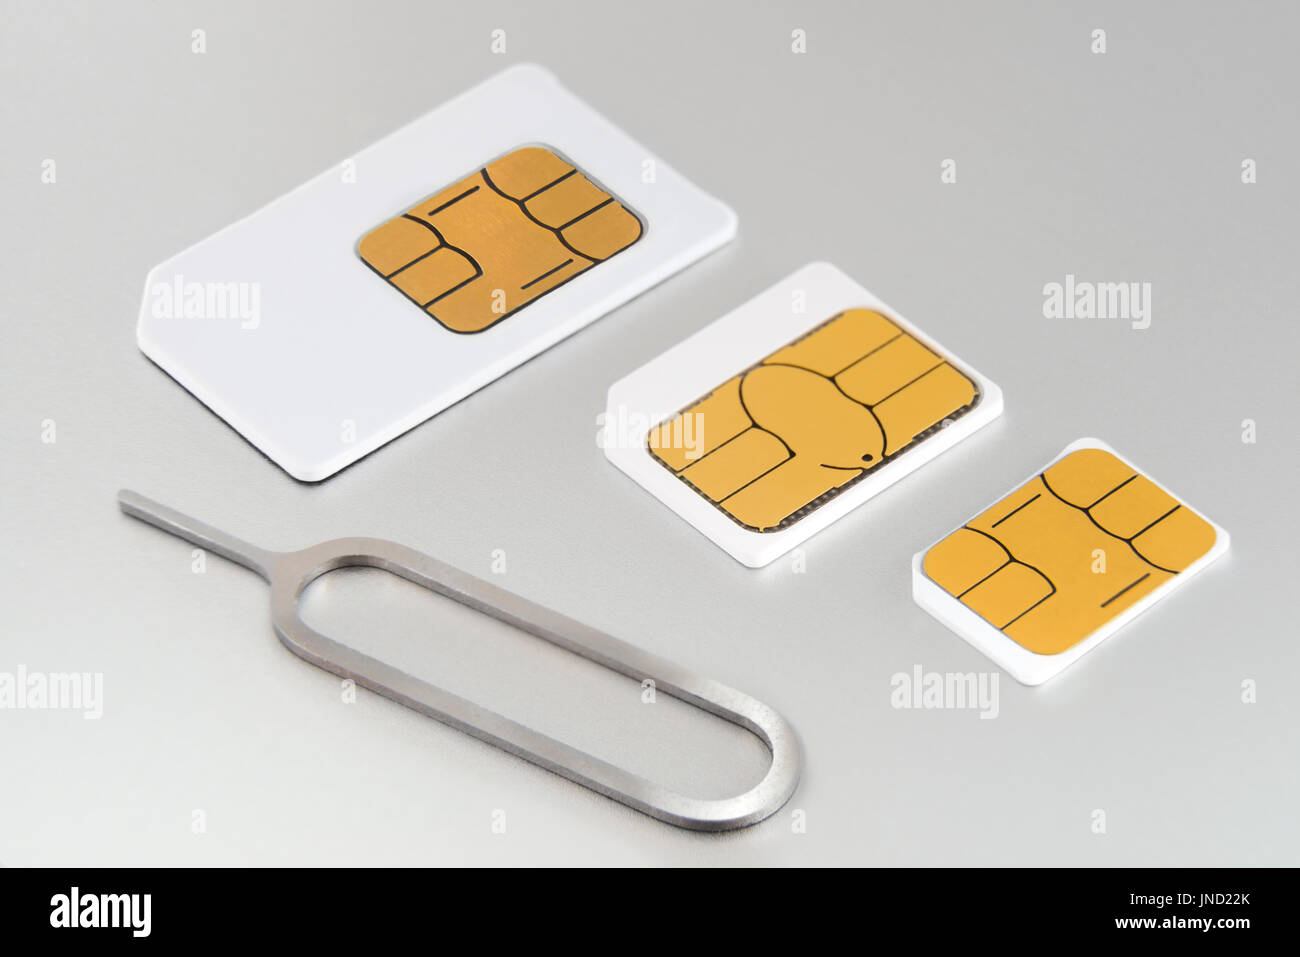 Three types of GSM SIM cards: Mini SIM, Micro SIM and Nano SIM. Compatibility issue on many smartphones. Subscriber Identification Module - Stock Image